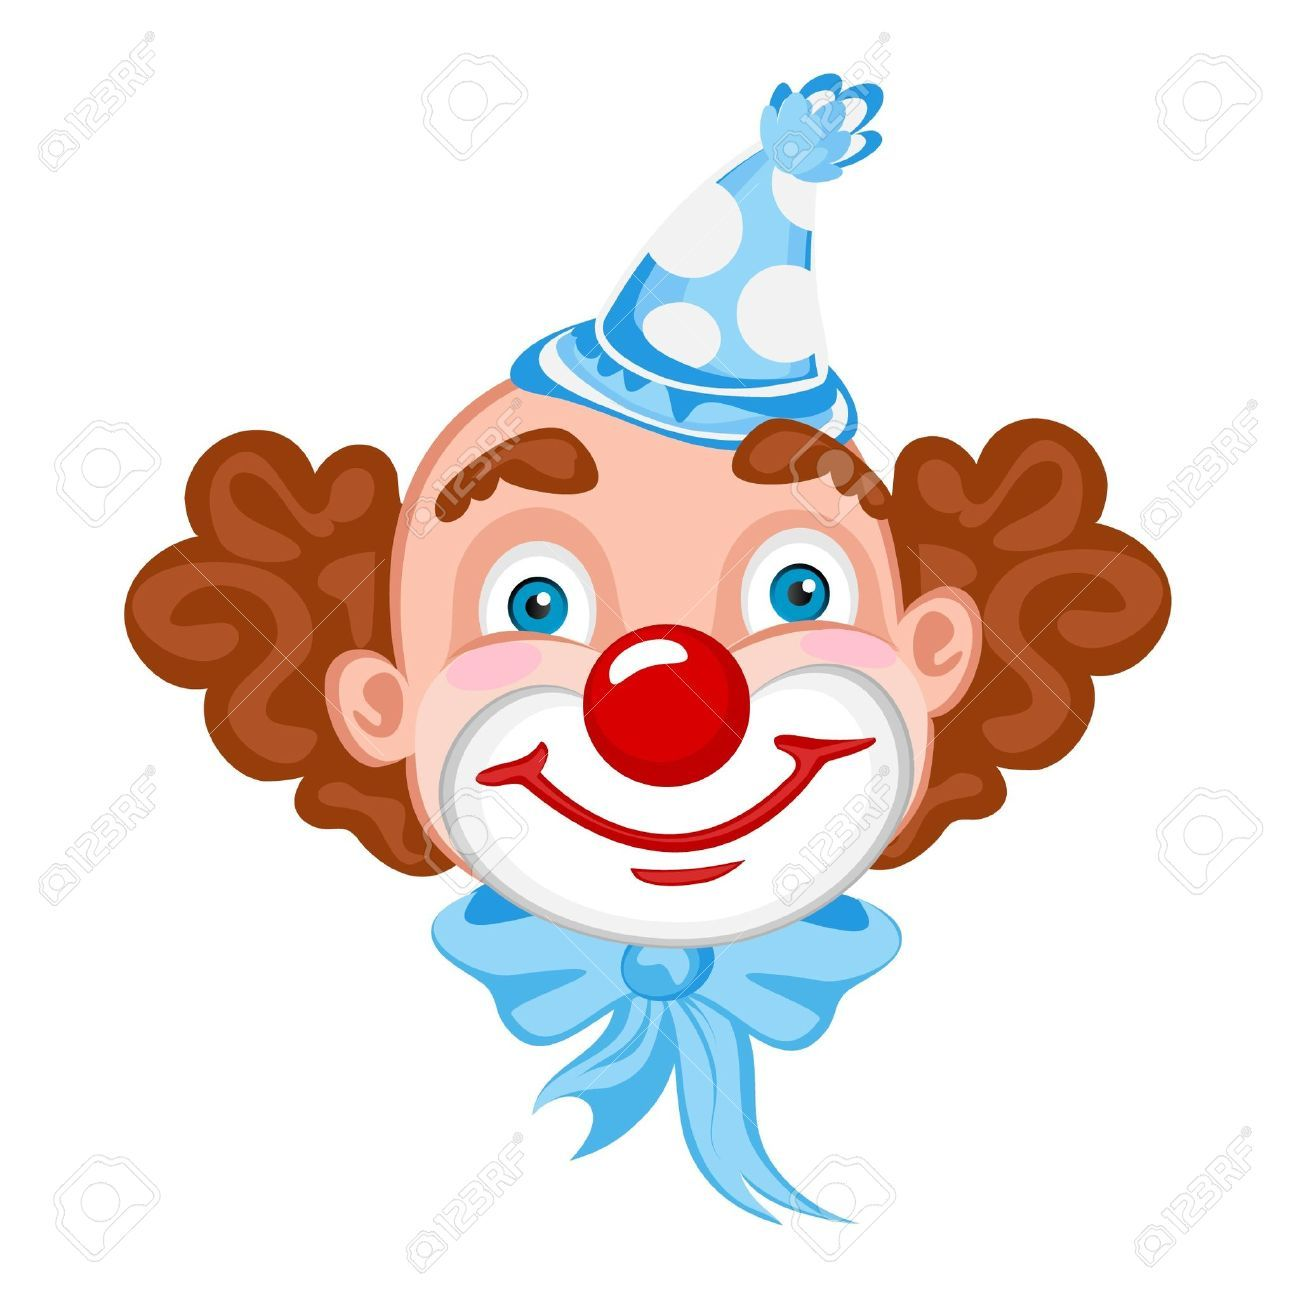 Joker clipart smile Collections Face Clown BBCpersian7 photos